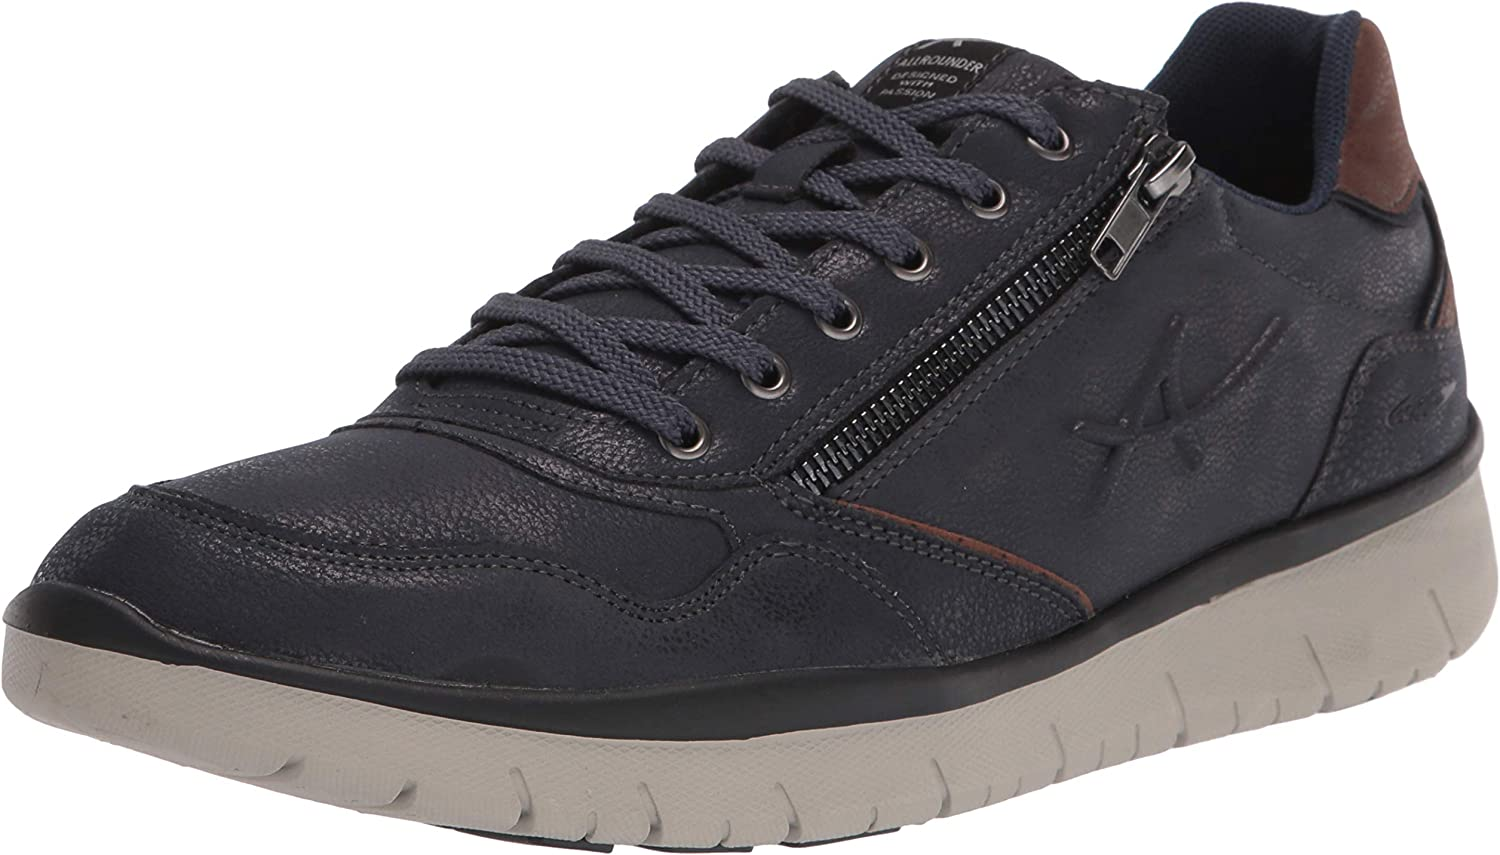 Allrounder by Mephisto Over New Shipping Free Shipping item handling ☆ Majestro Men's Sneaker